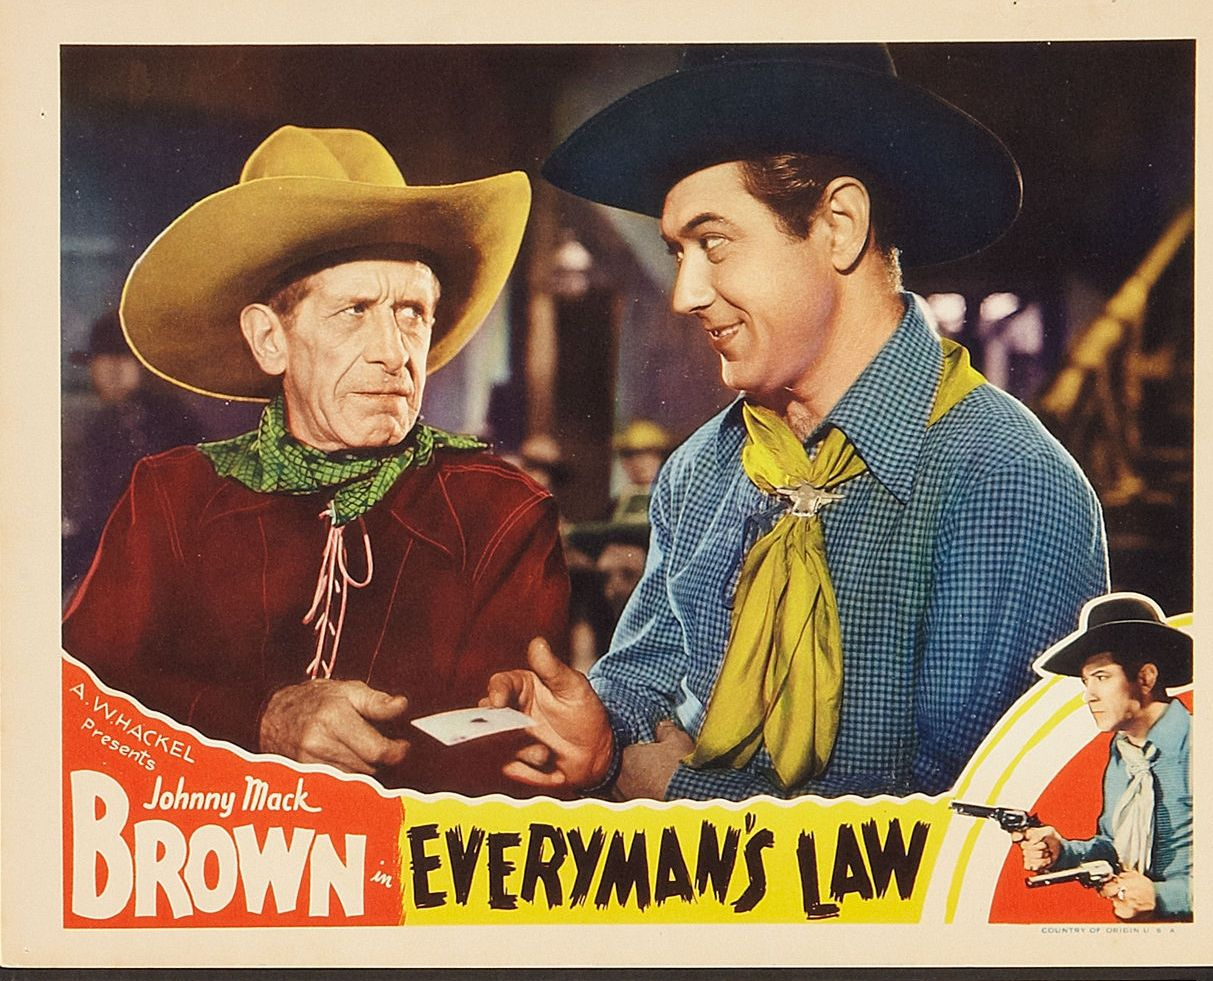 Johnny Mack Brown and Frank Campeau in Everyman's Law (1936)